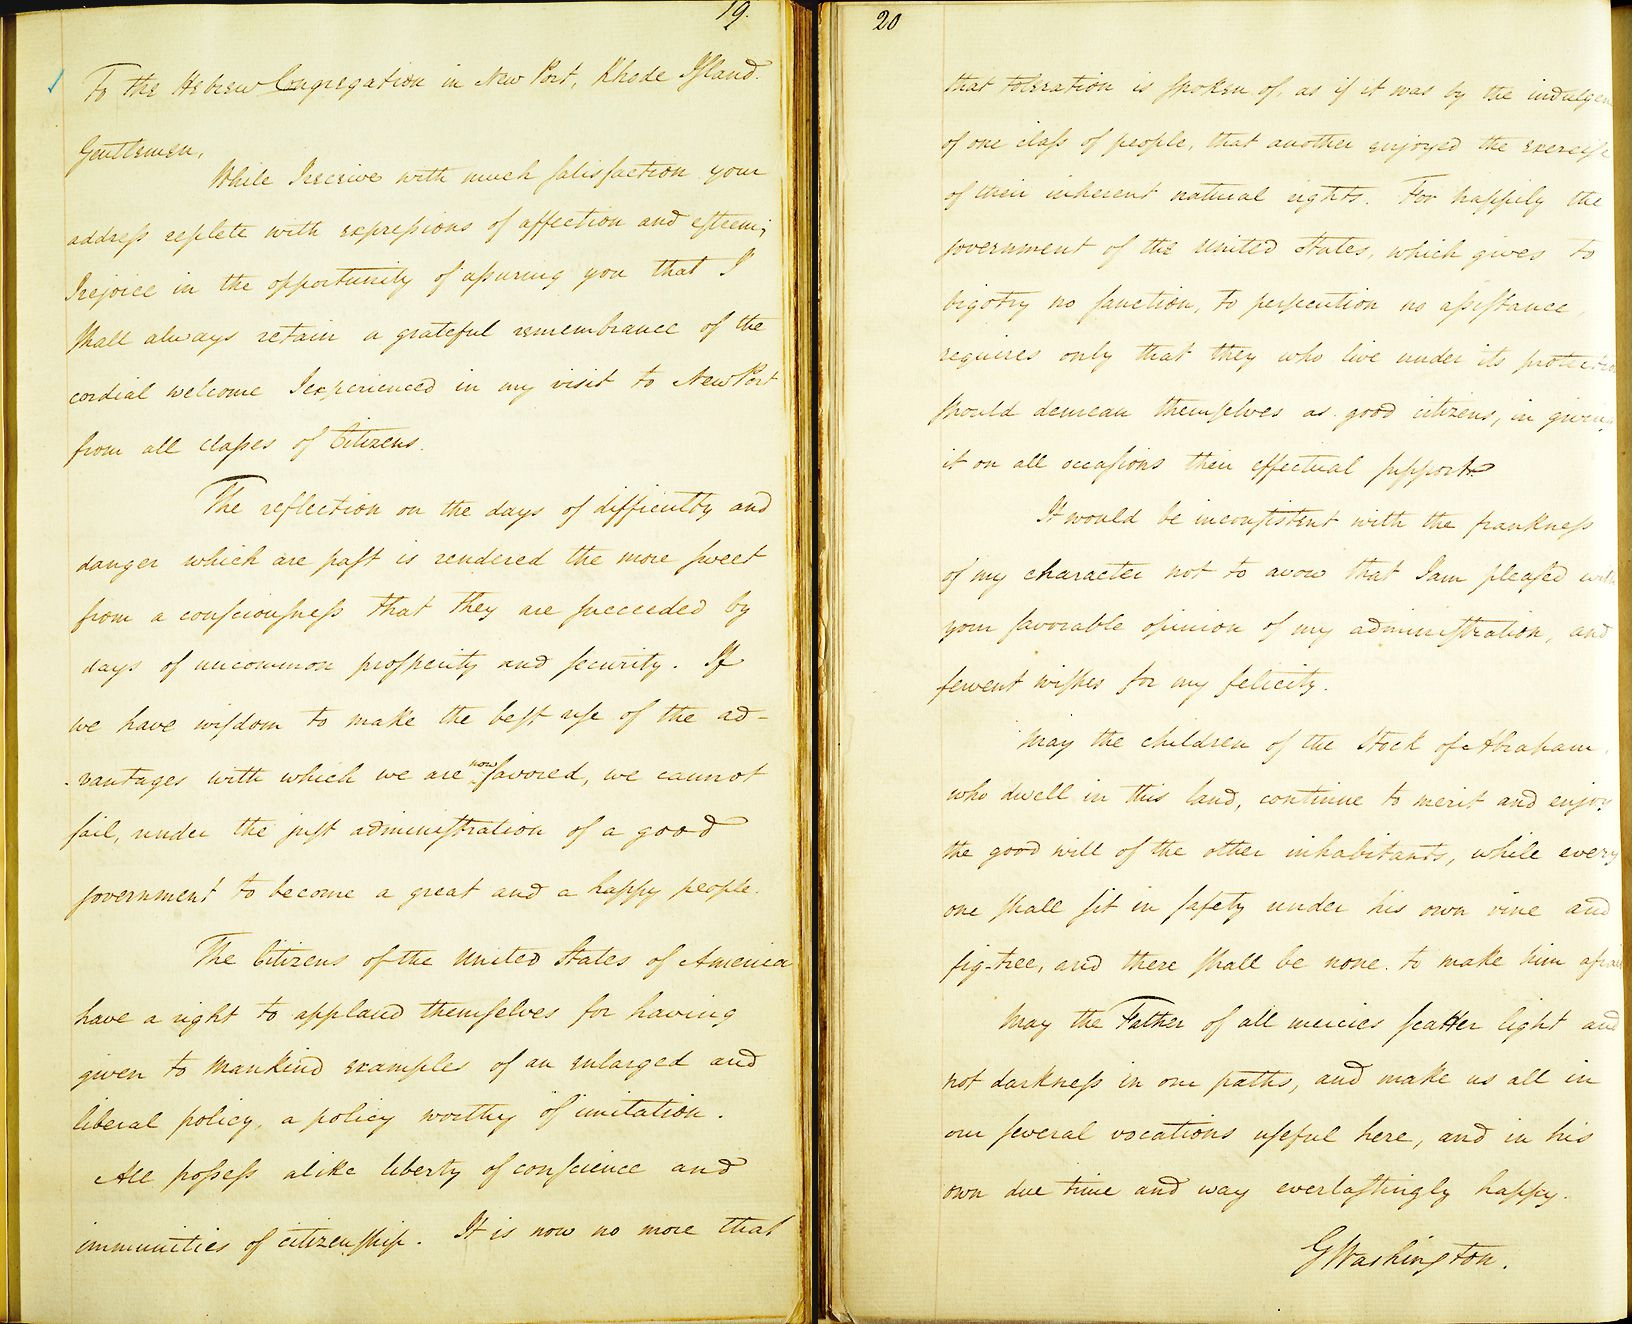 Keepsake: A copy of Washington?s letter to the Jews of Newport, found in the letter book of the President?s secretary. Click to enlarge image.